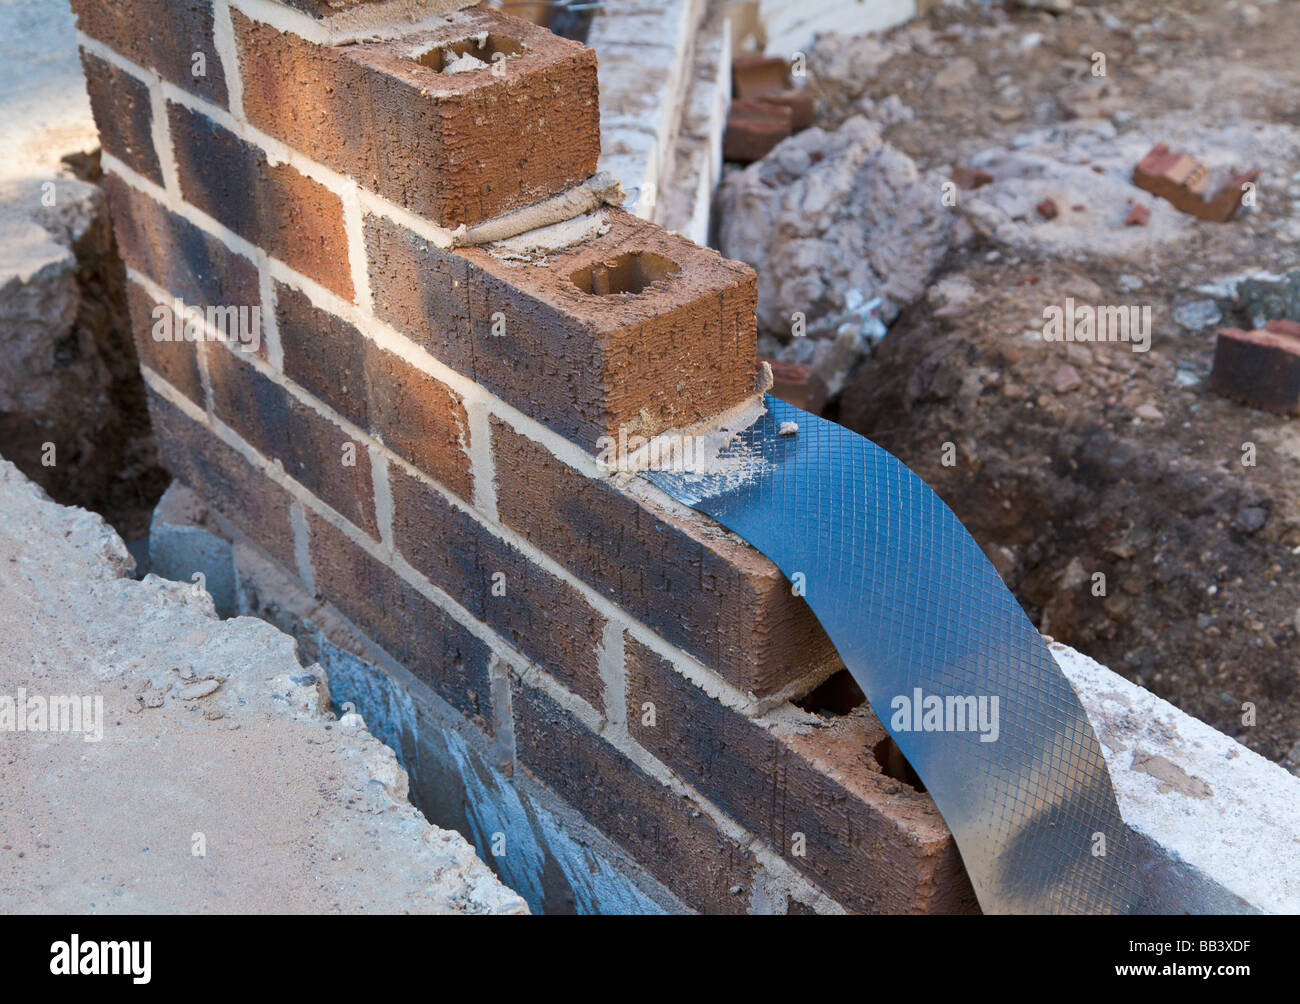 Damp Proof Membrane : Damp proof membrane being built into a brick wall house